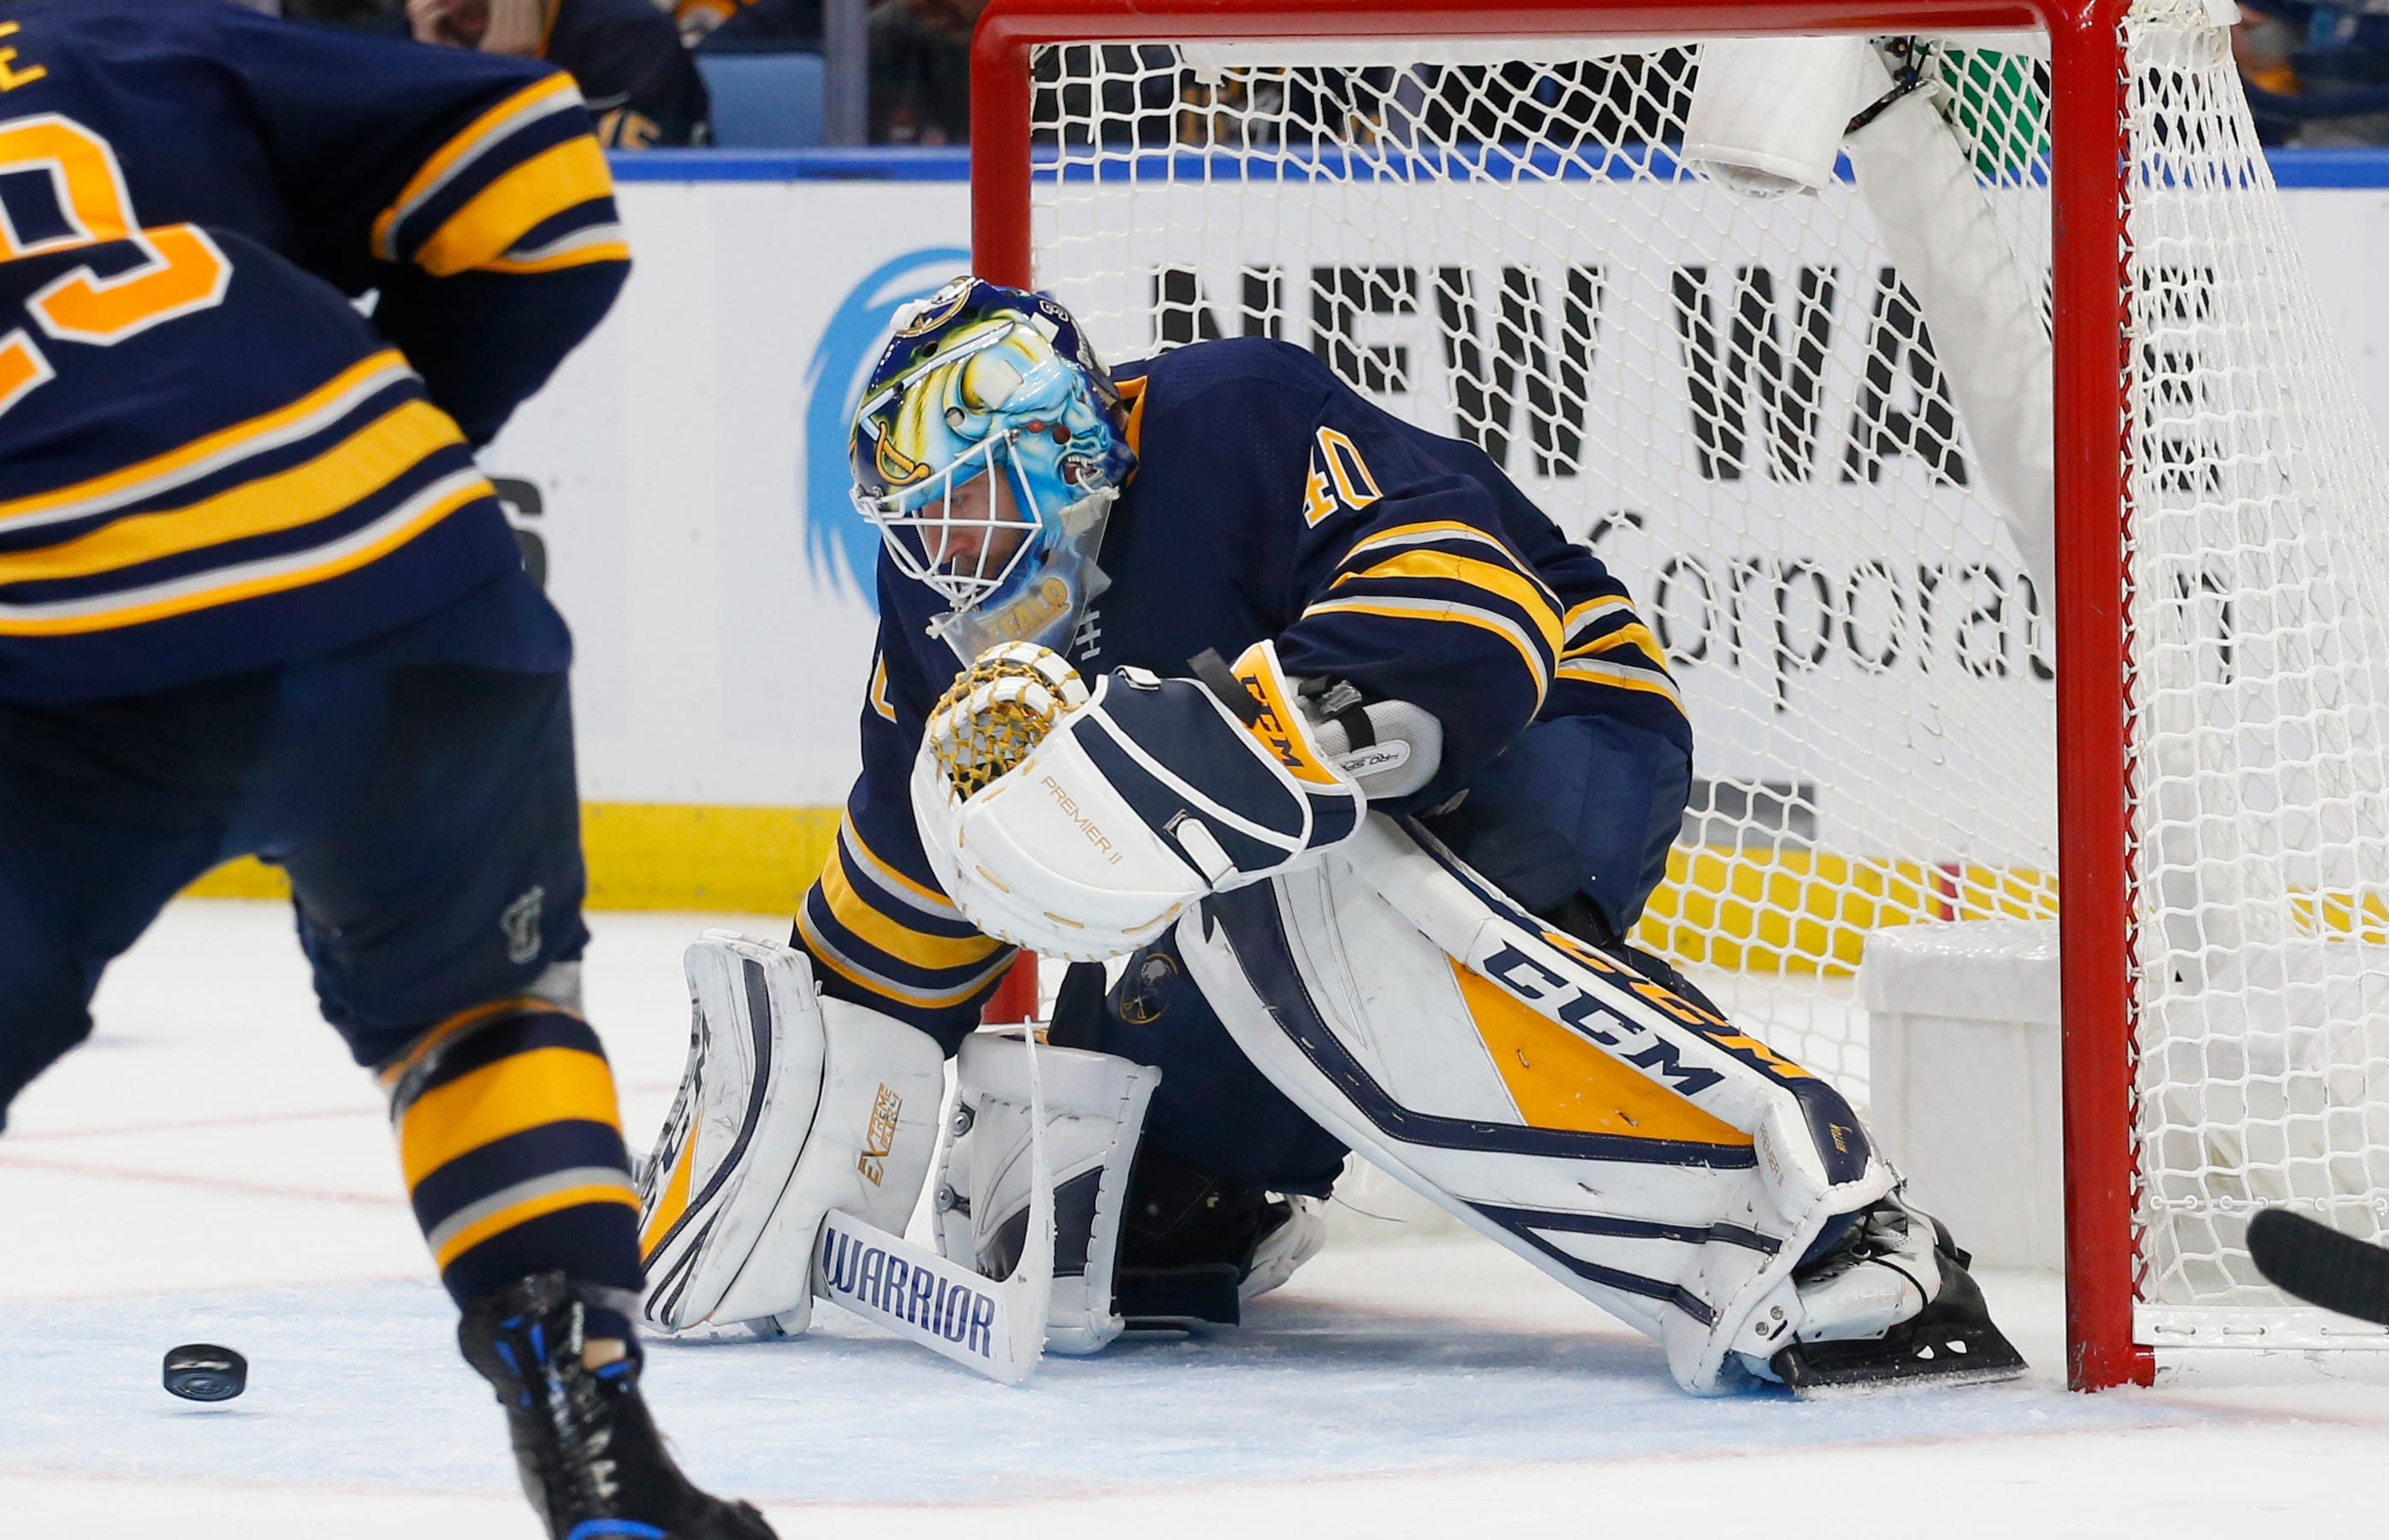 Sabres top Sharks 3-2 in OT, winning streak reaches 10 games